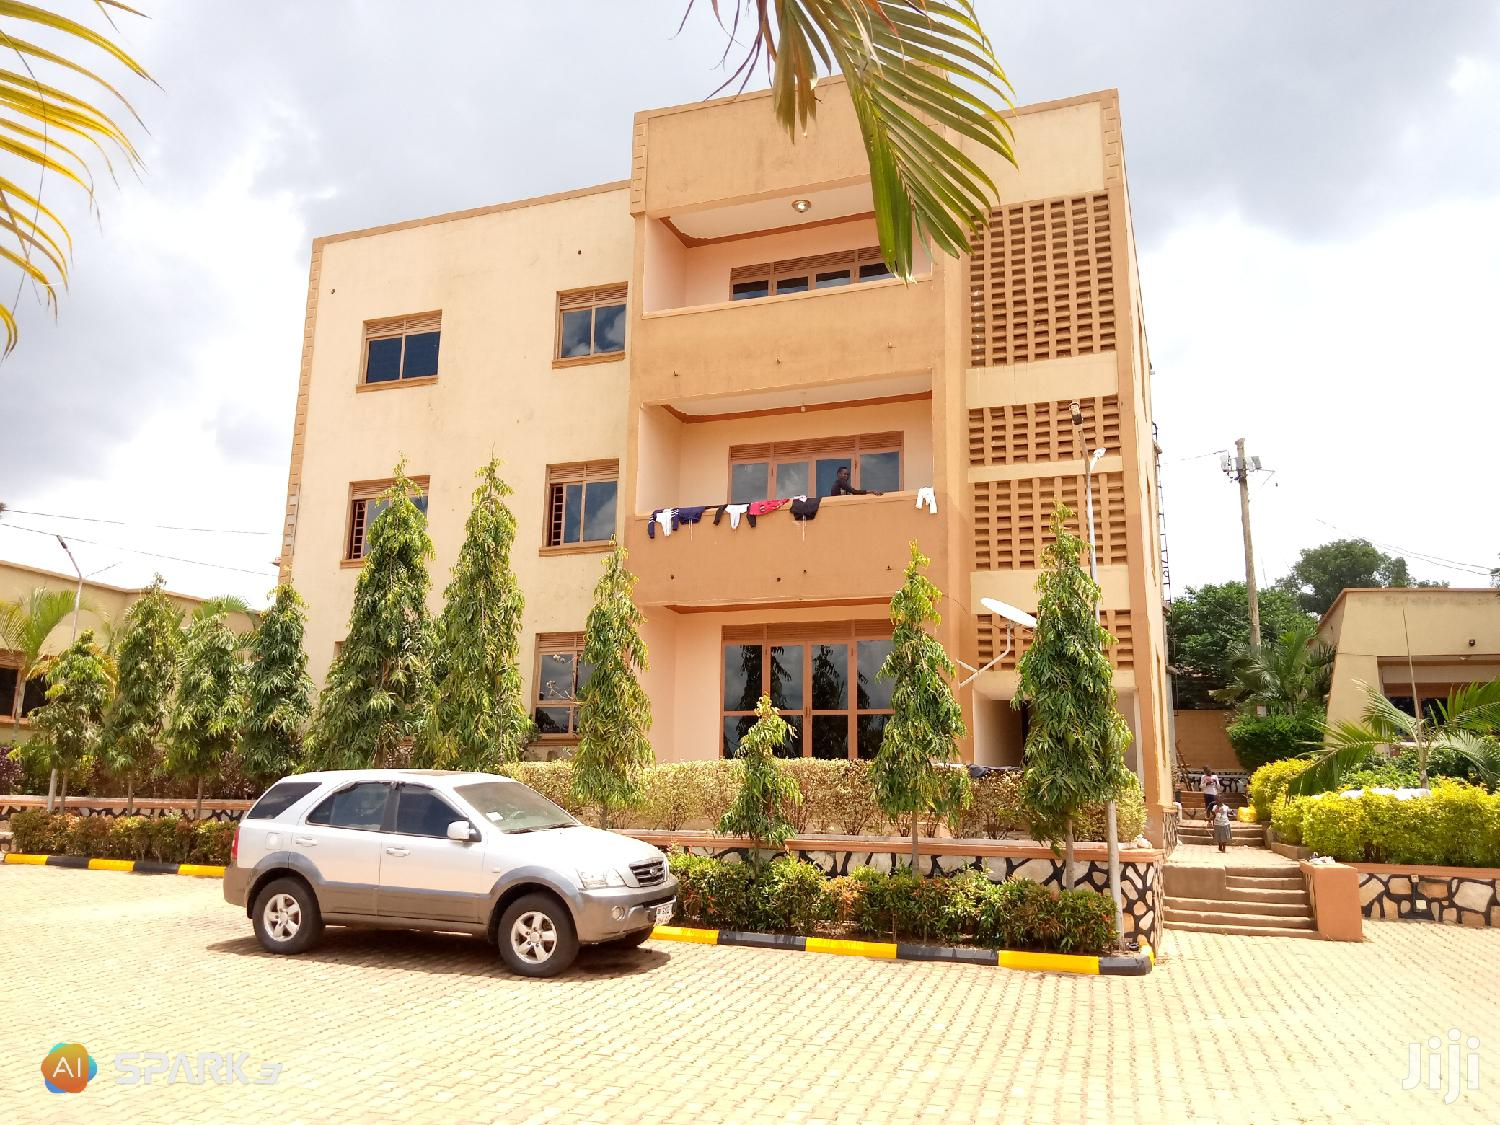 Four Bedrooms for Rent in Kireka Namugongo Rd